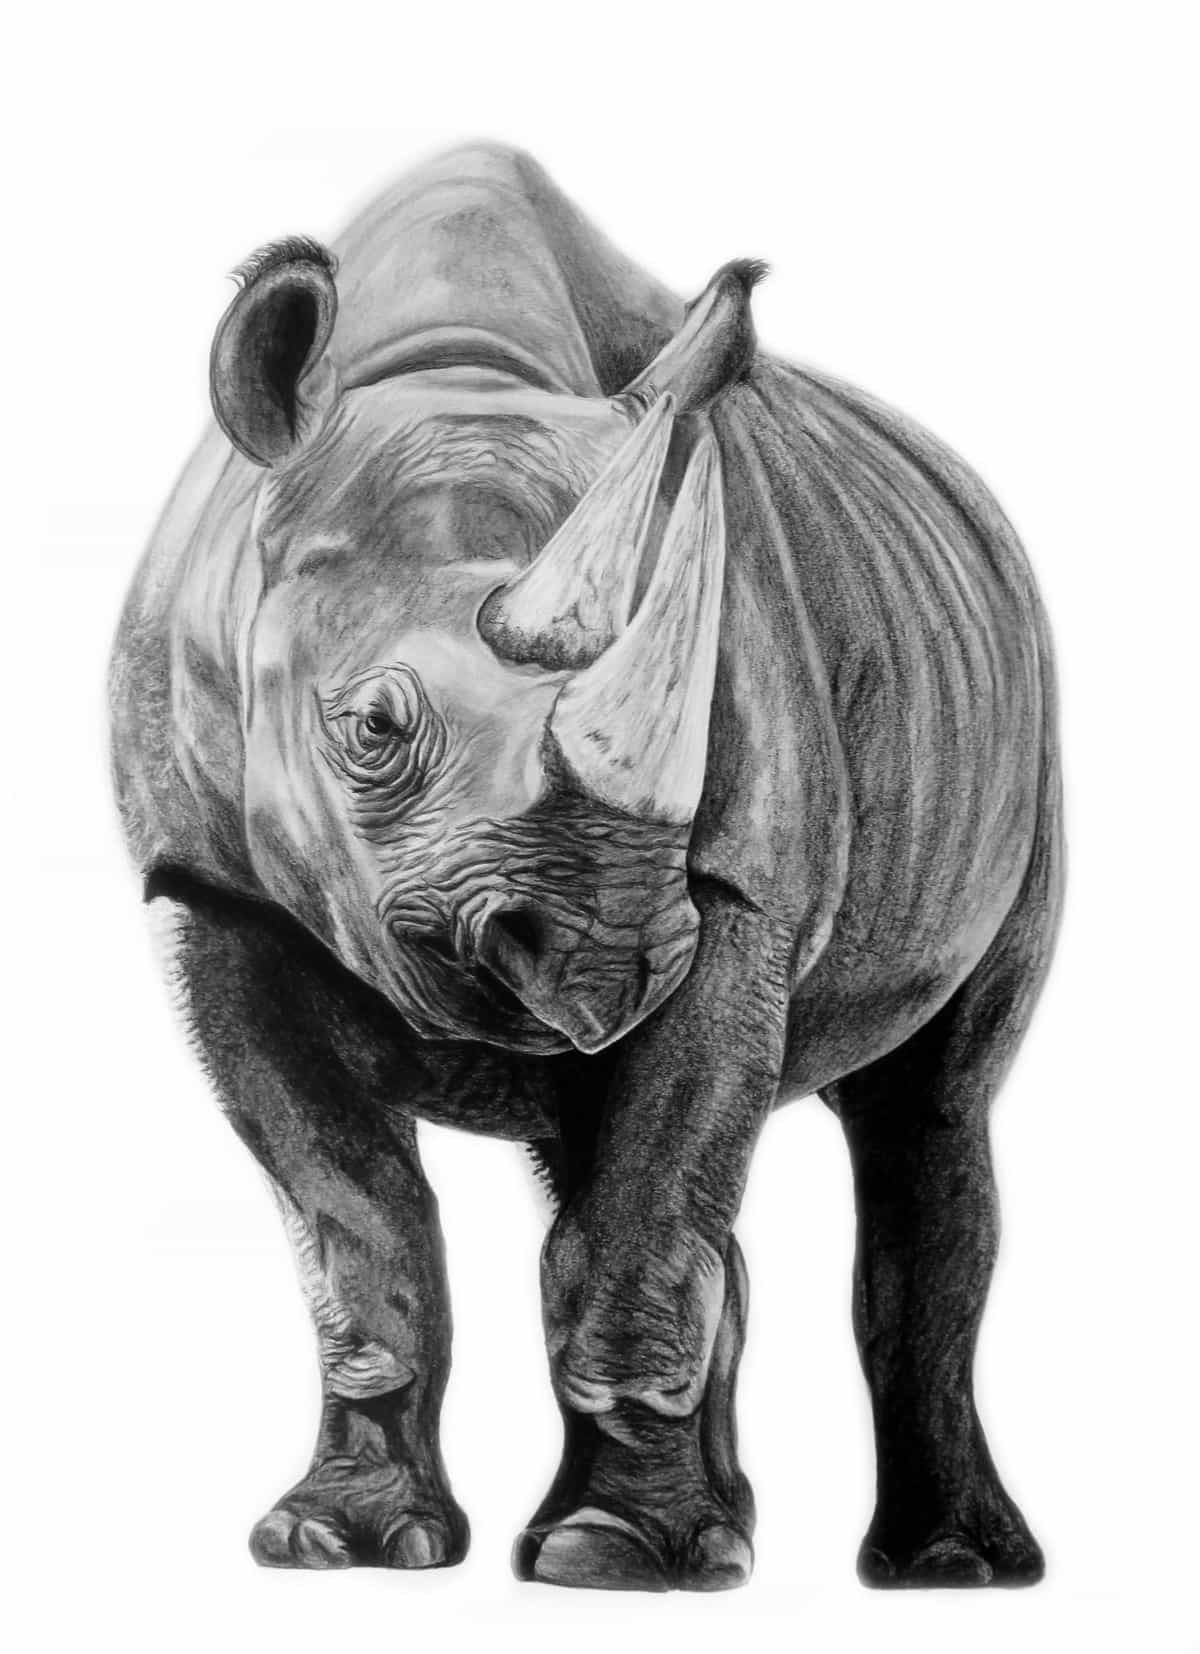 Corinna Thurston, Black Rhino, graphite and colored pencil